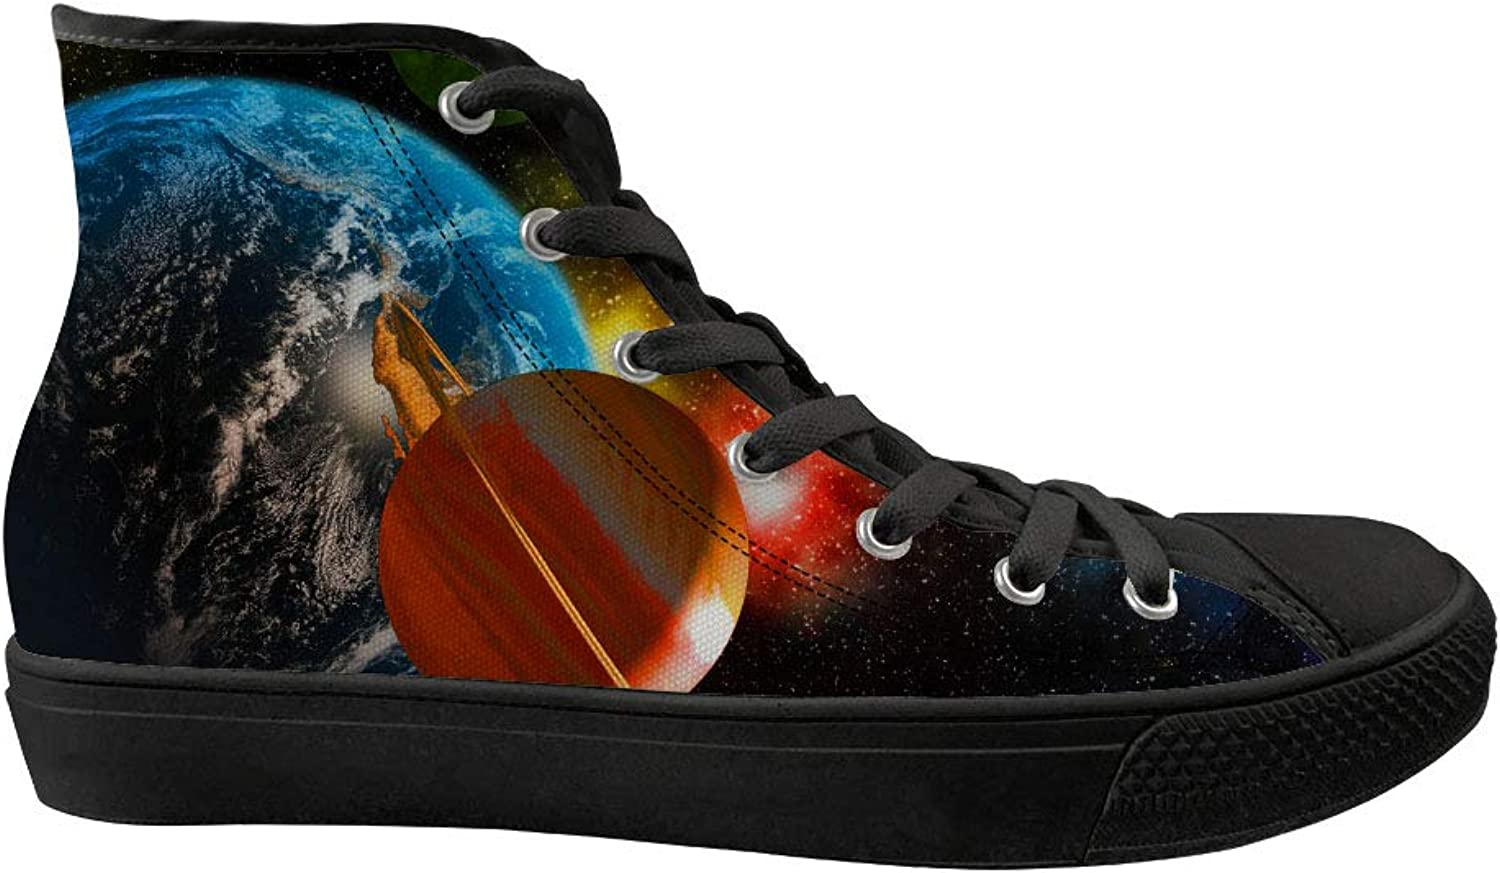 Youngerbaby Galaxy Canvas shoes High Top Hip hop Flat Walking Sneakers Unisex